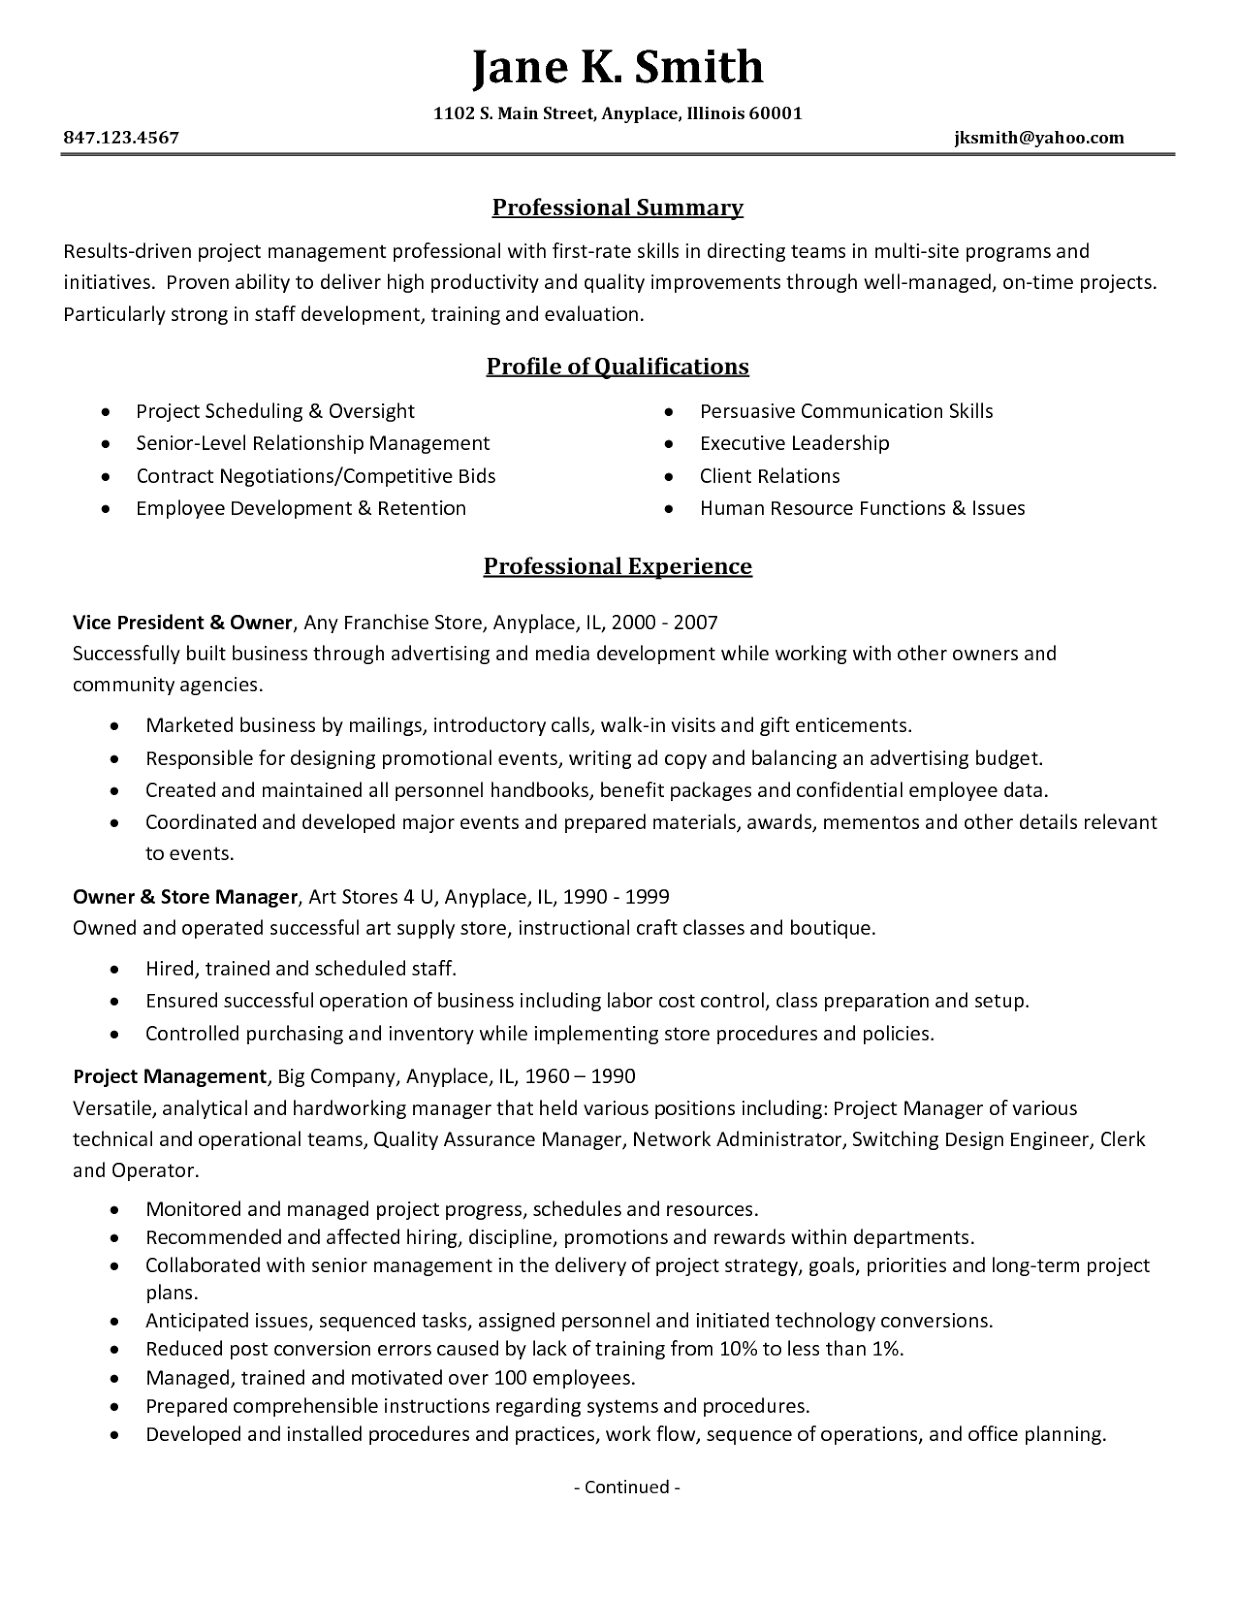 Project Manager Resume Objective Examples Project Management Resume Samples 2016 Sample Resumes